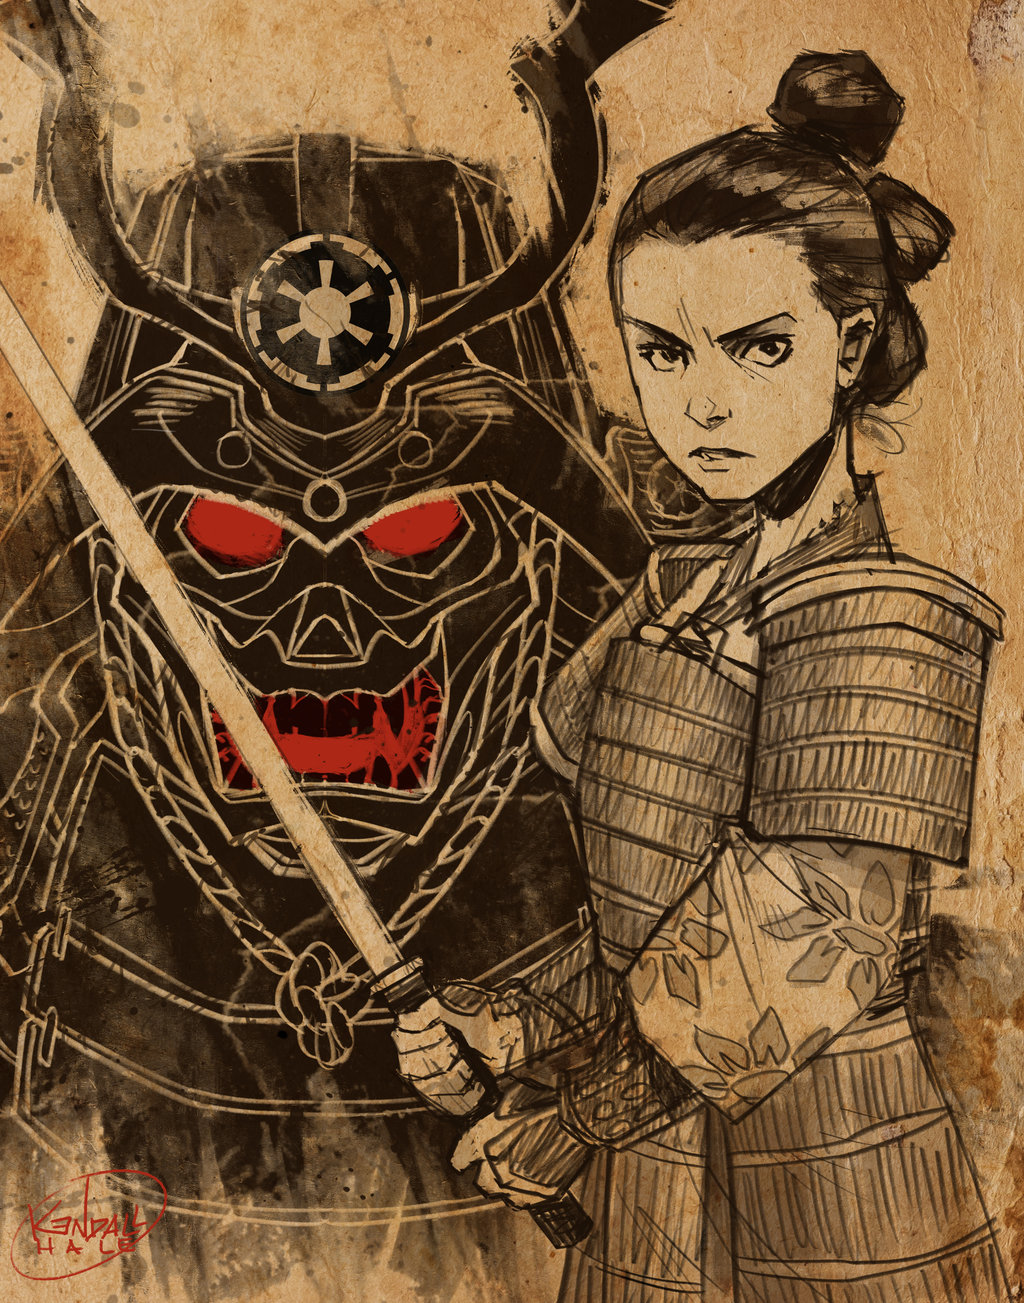 Samurai Rey by Kendall Hale